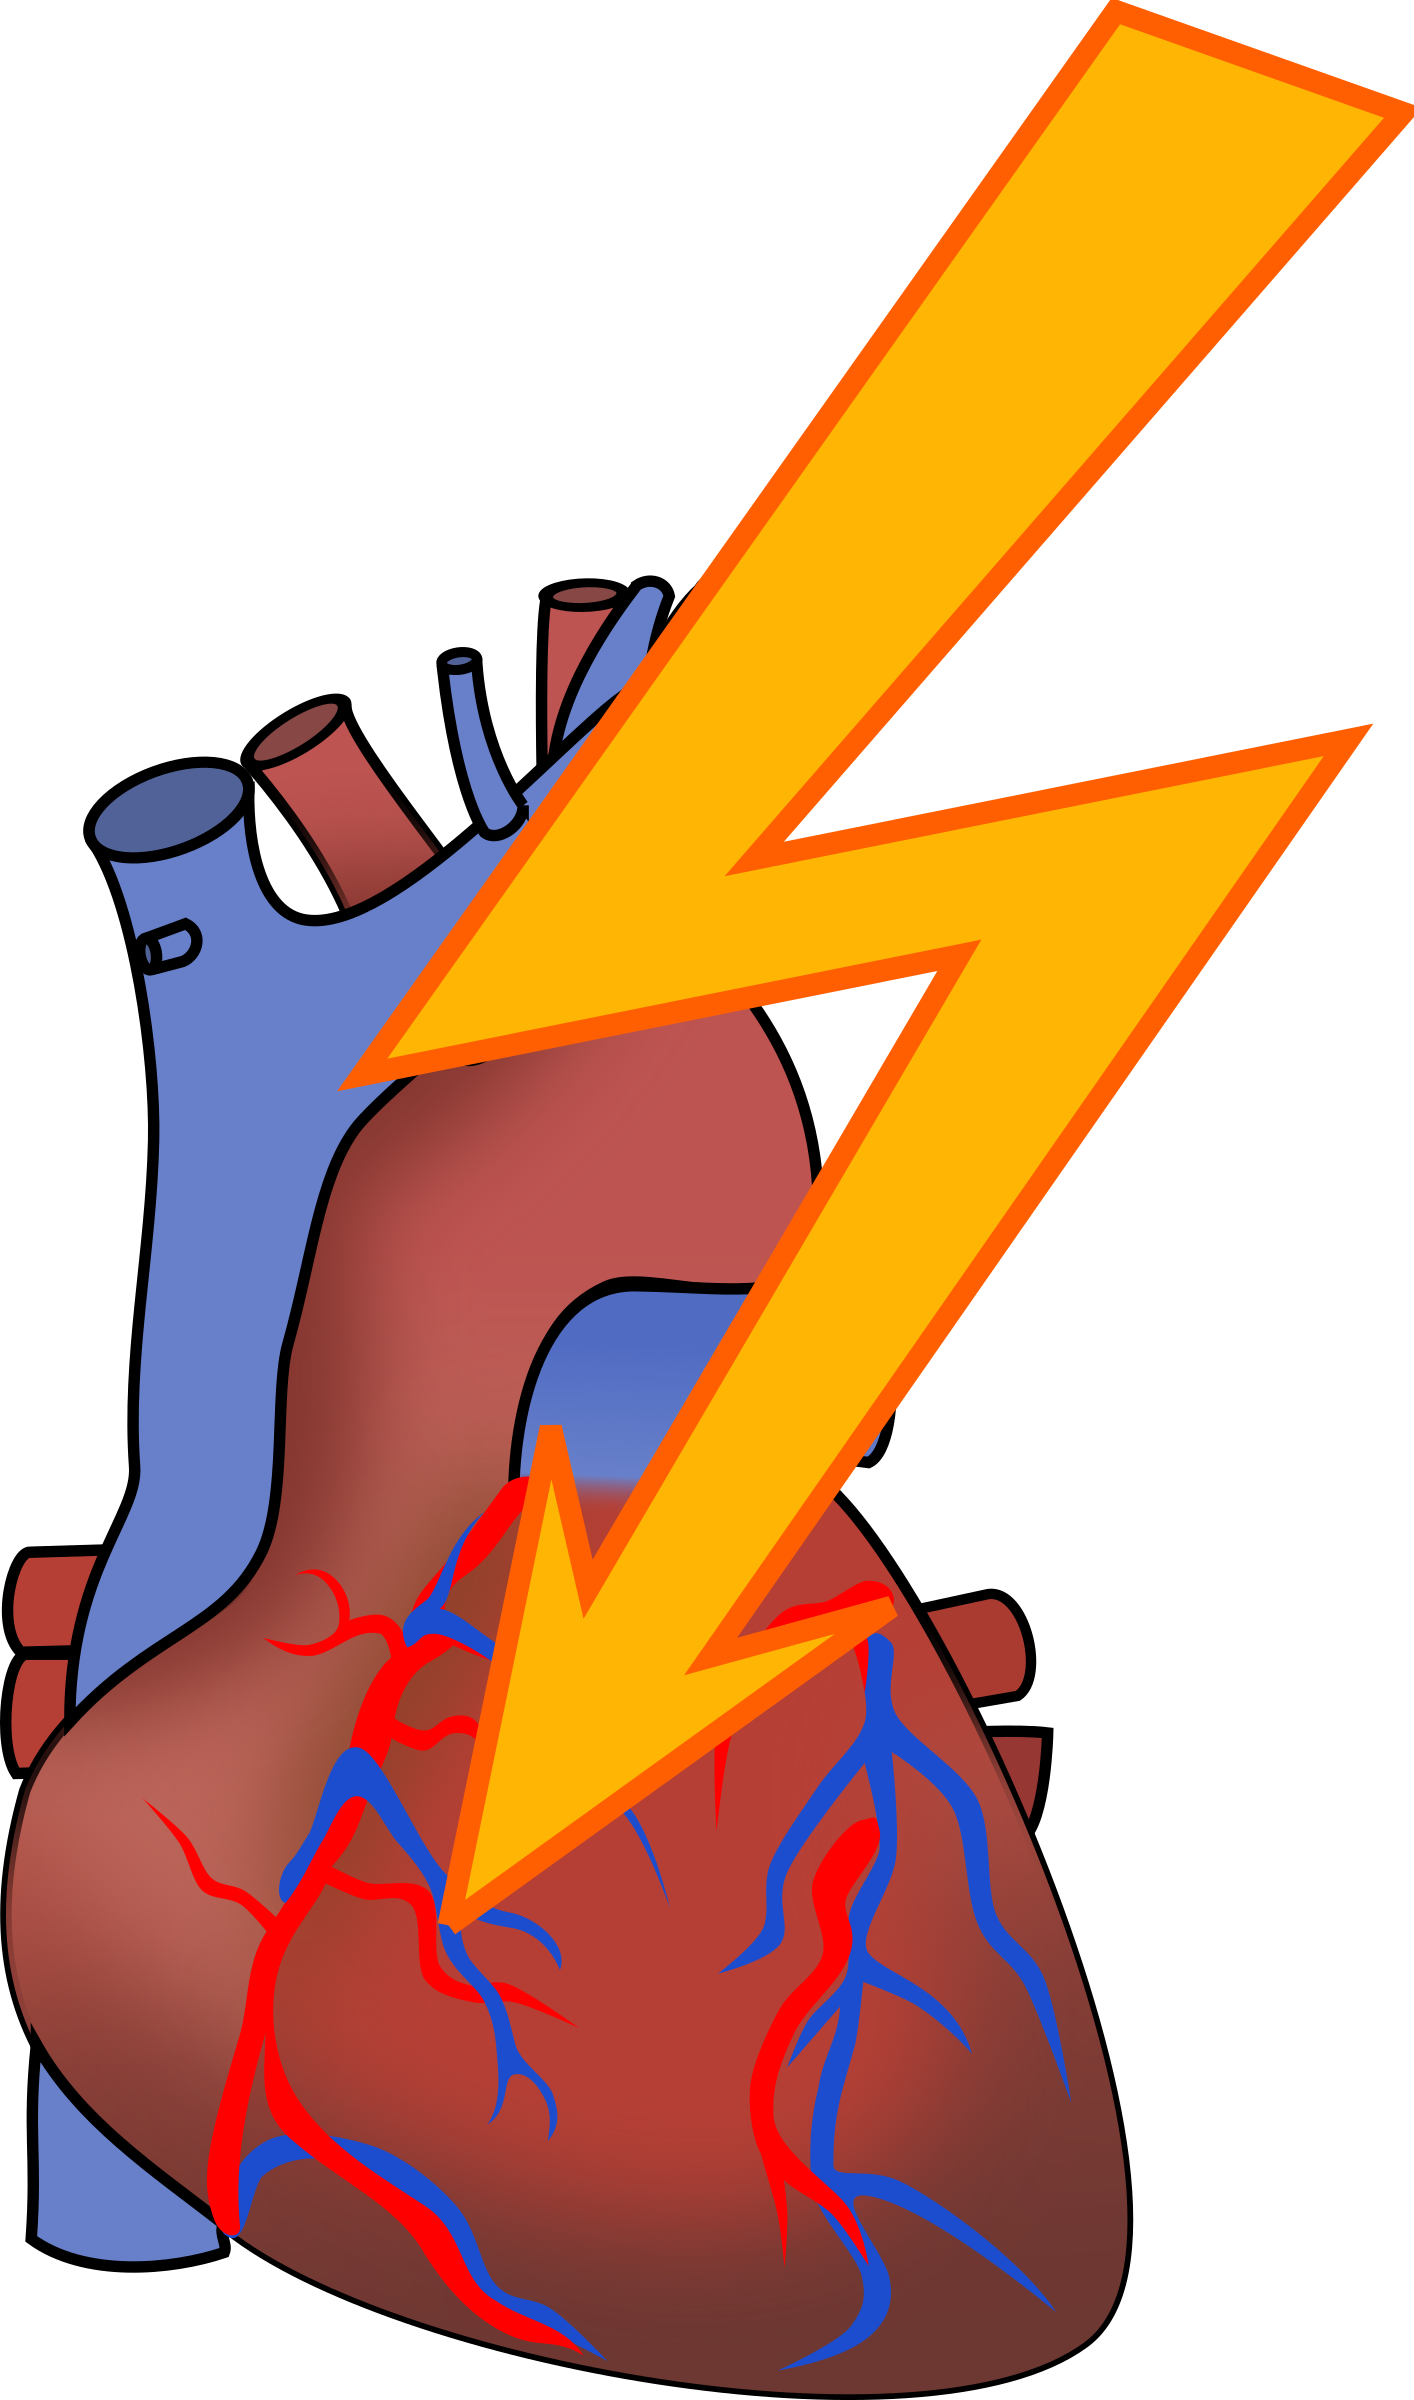 Clipart - Heart attack